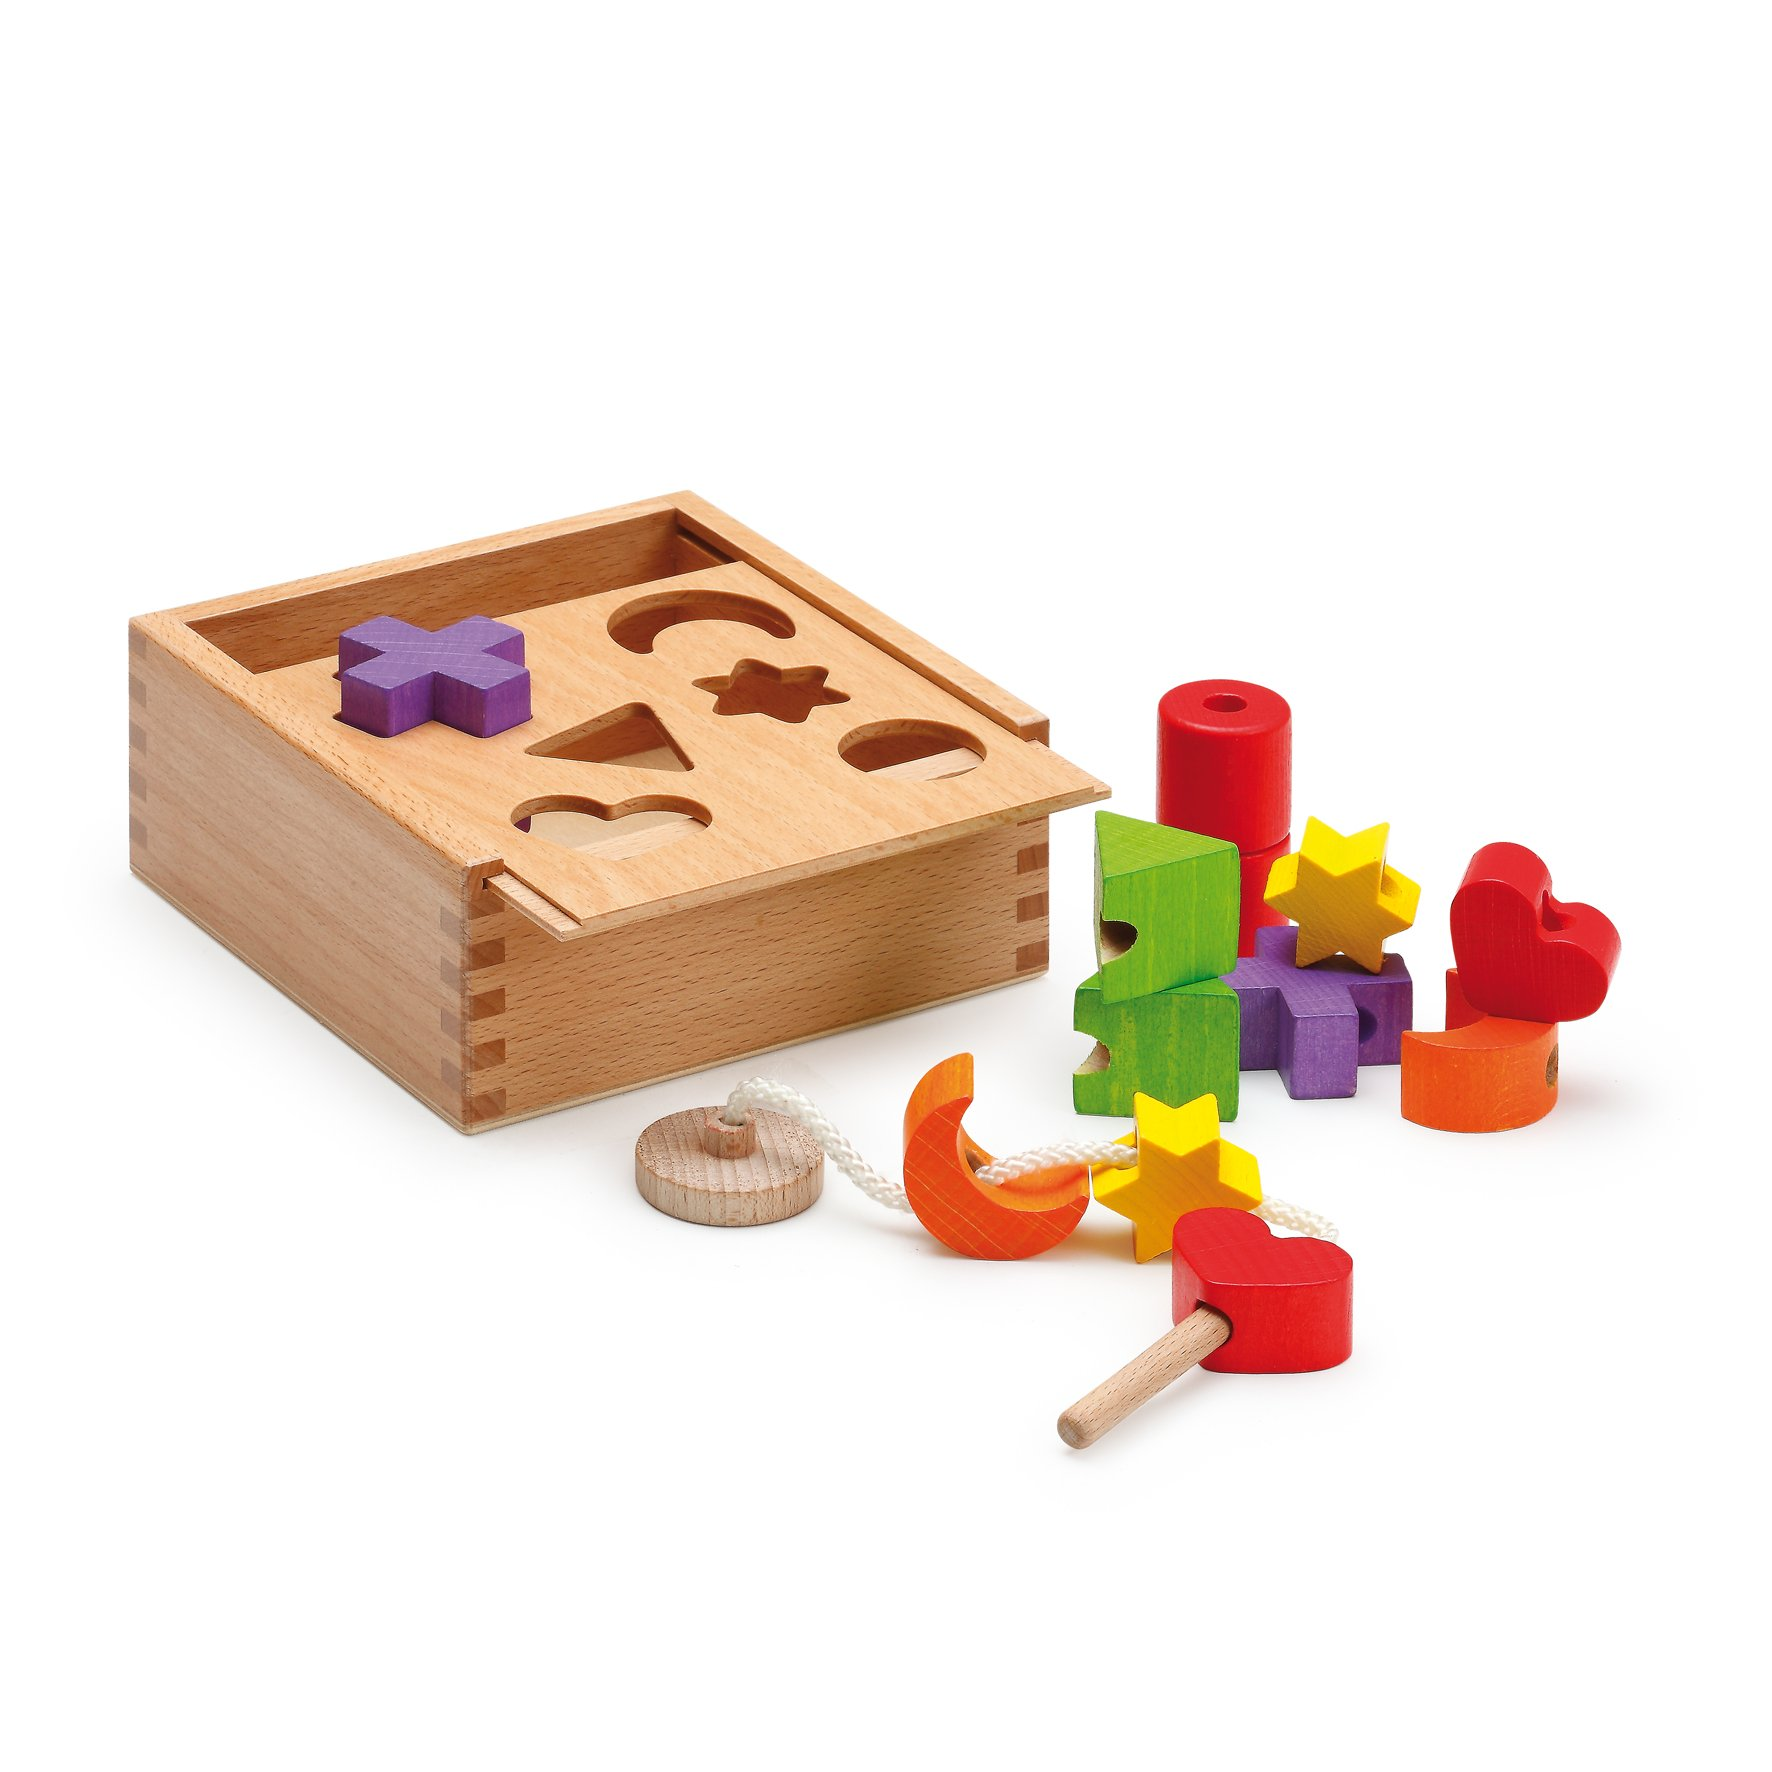 Erzi 15 x 15 x 6 5 cm German Wooden Toy Activity Cube